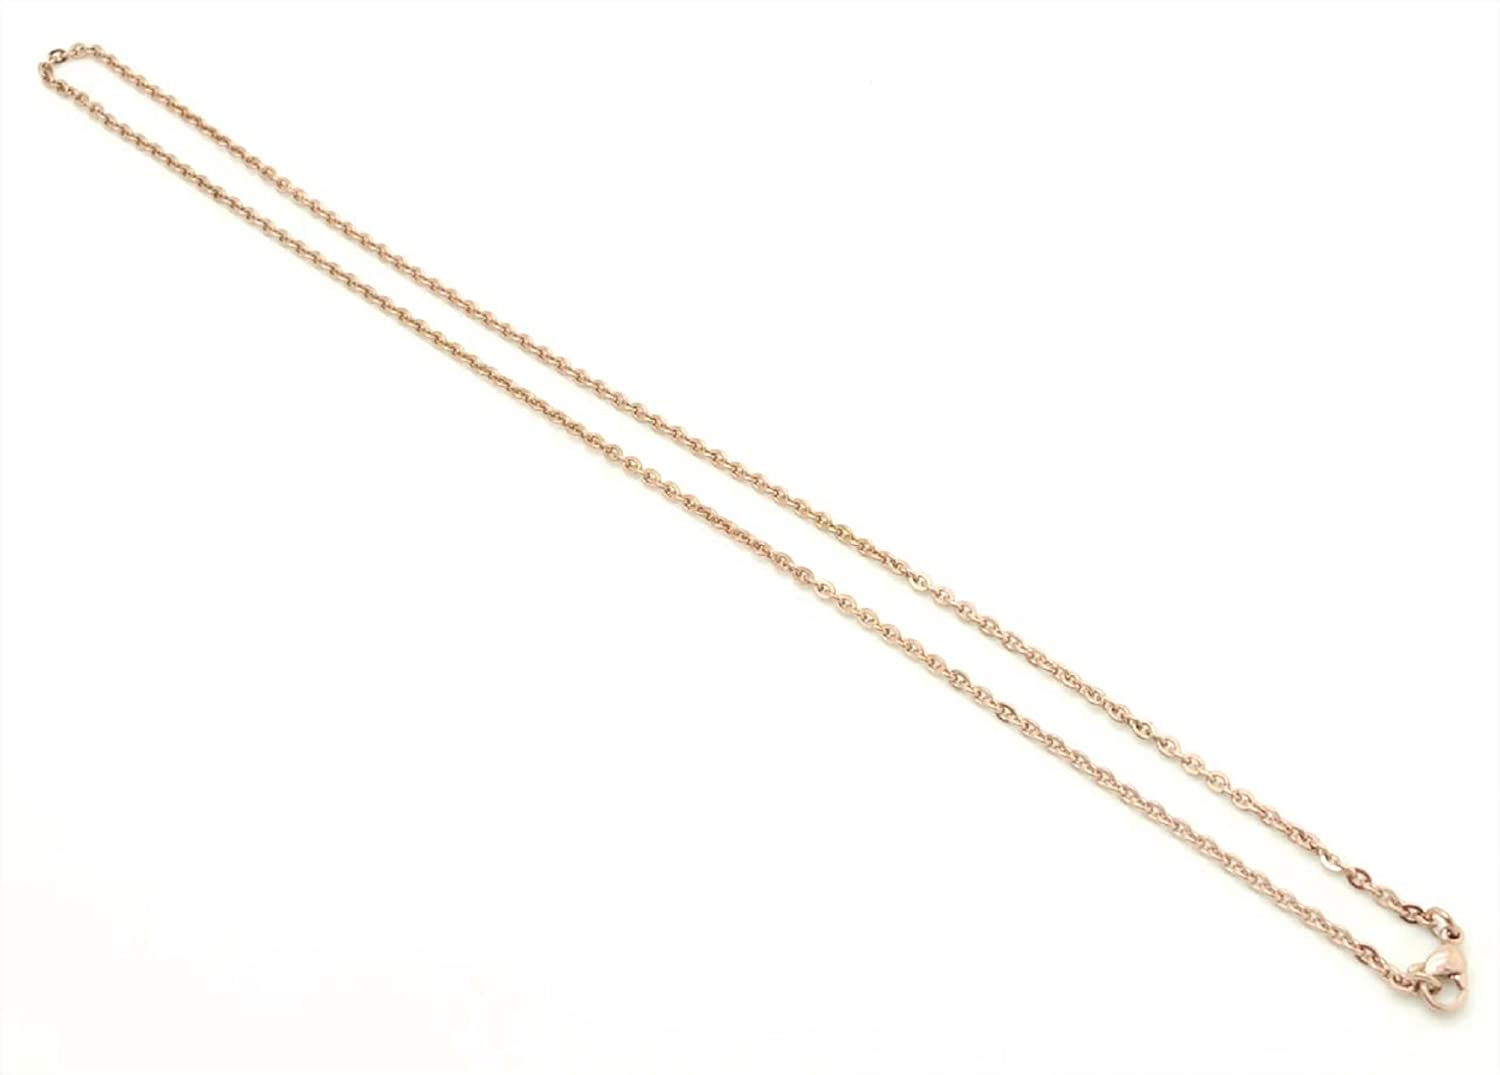 Chelsea Jewelry Basic Collections 30 18K Rose Gold Flat Cable Chain Necklace